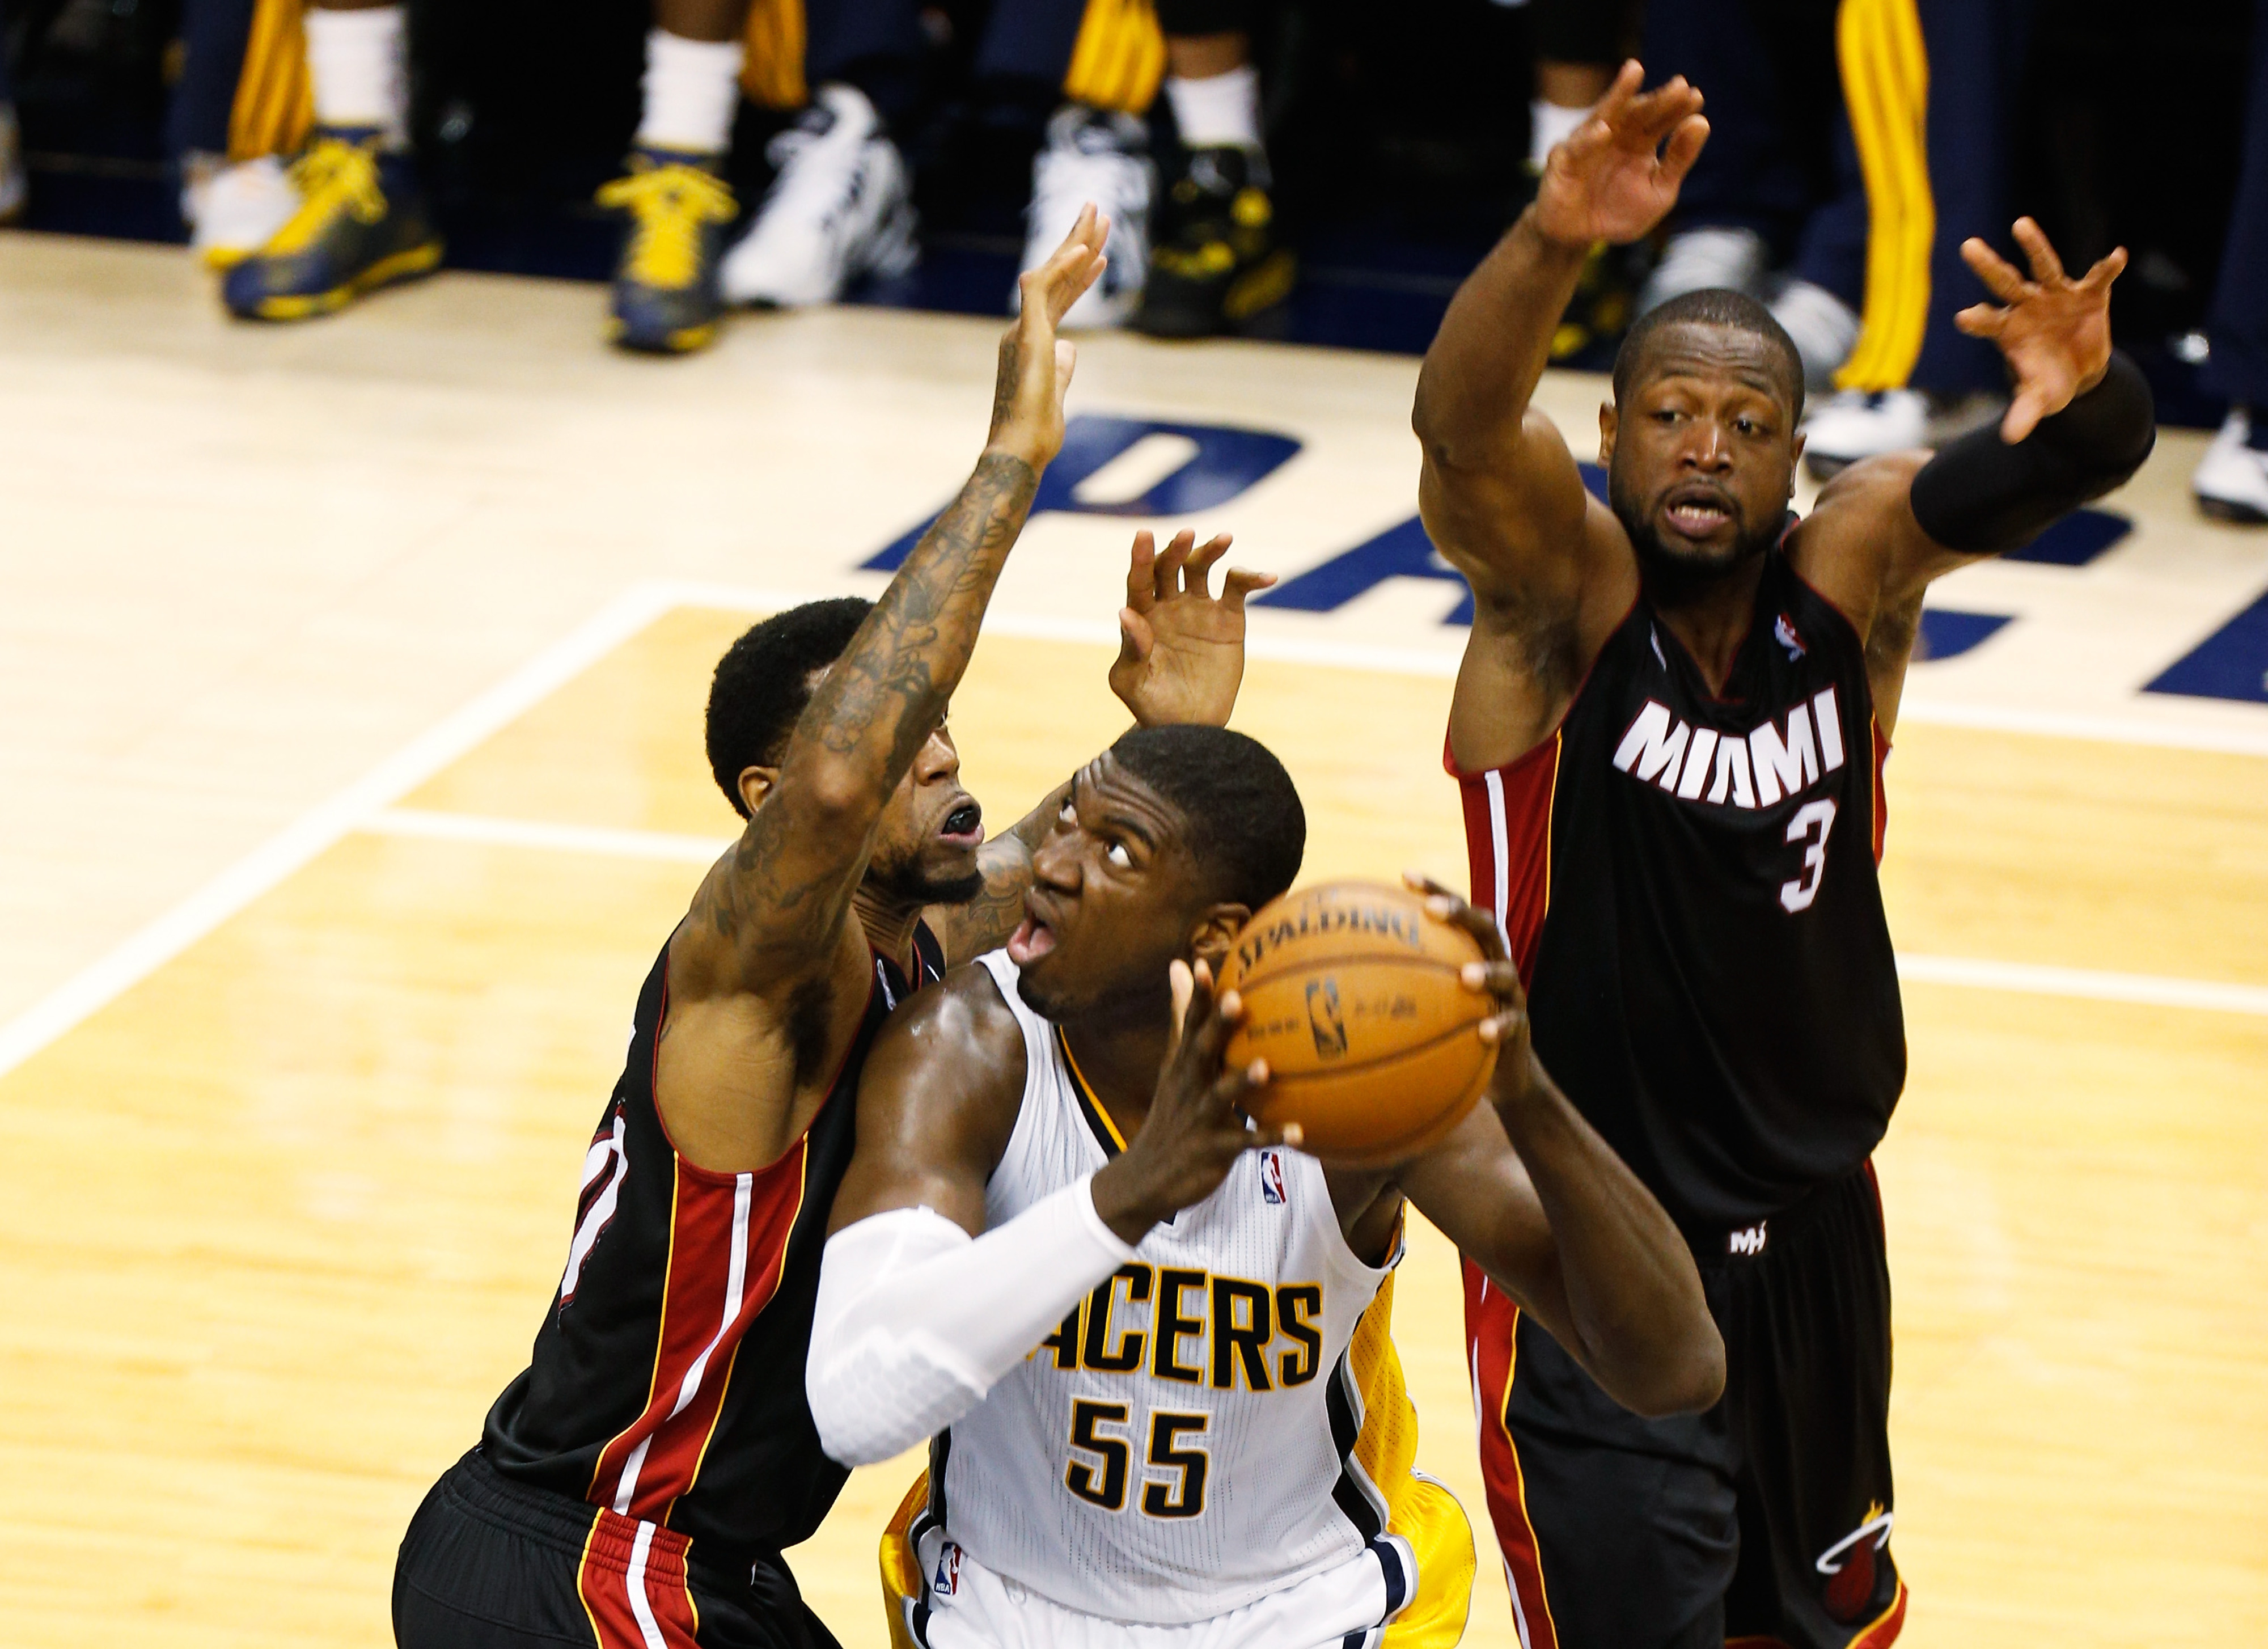 2013 NBA Playoffs: Pacers vs. Heat recap in GIFs